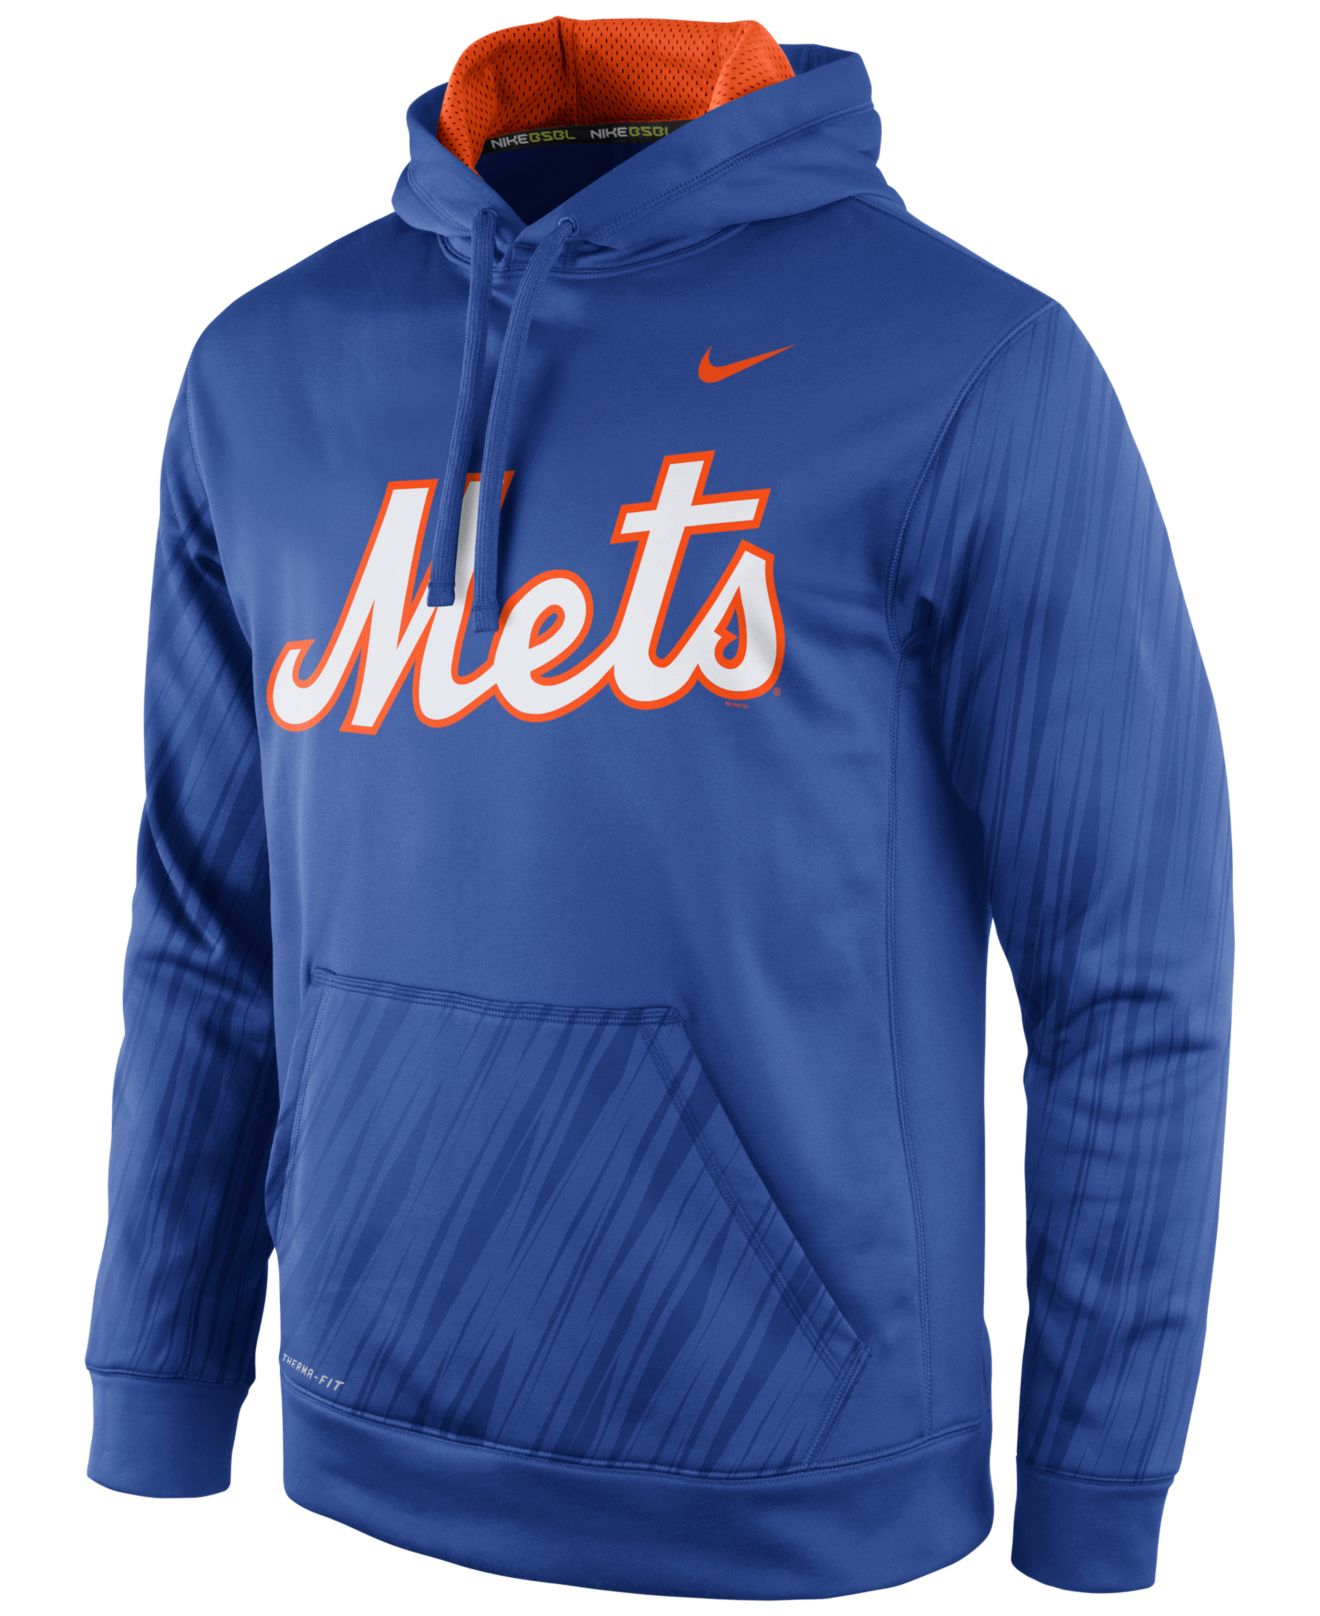 separation shoes 6abb7 bac7f New York Mets Hoodie